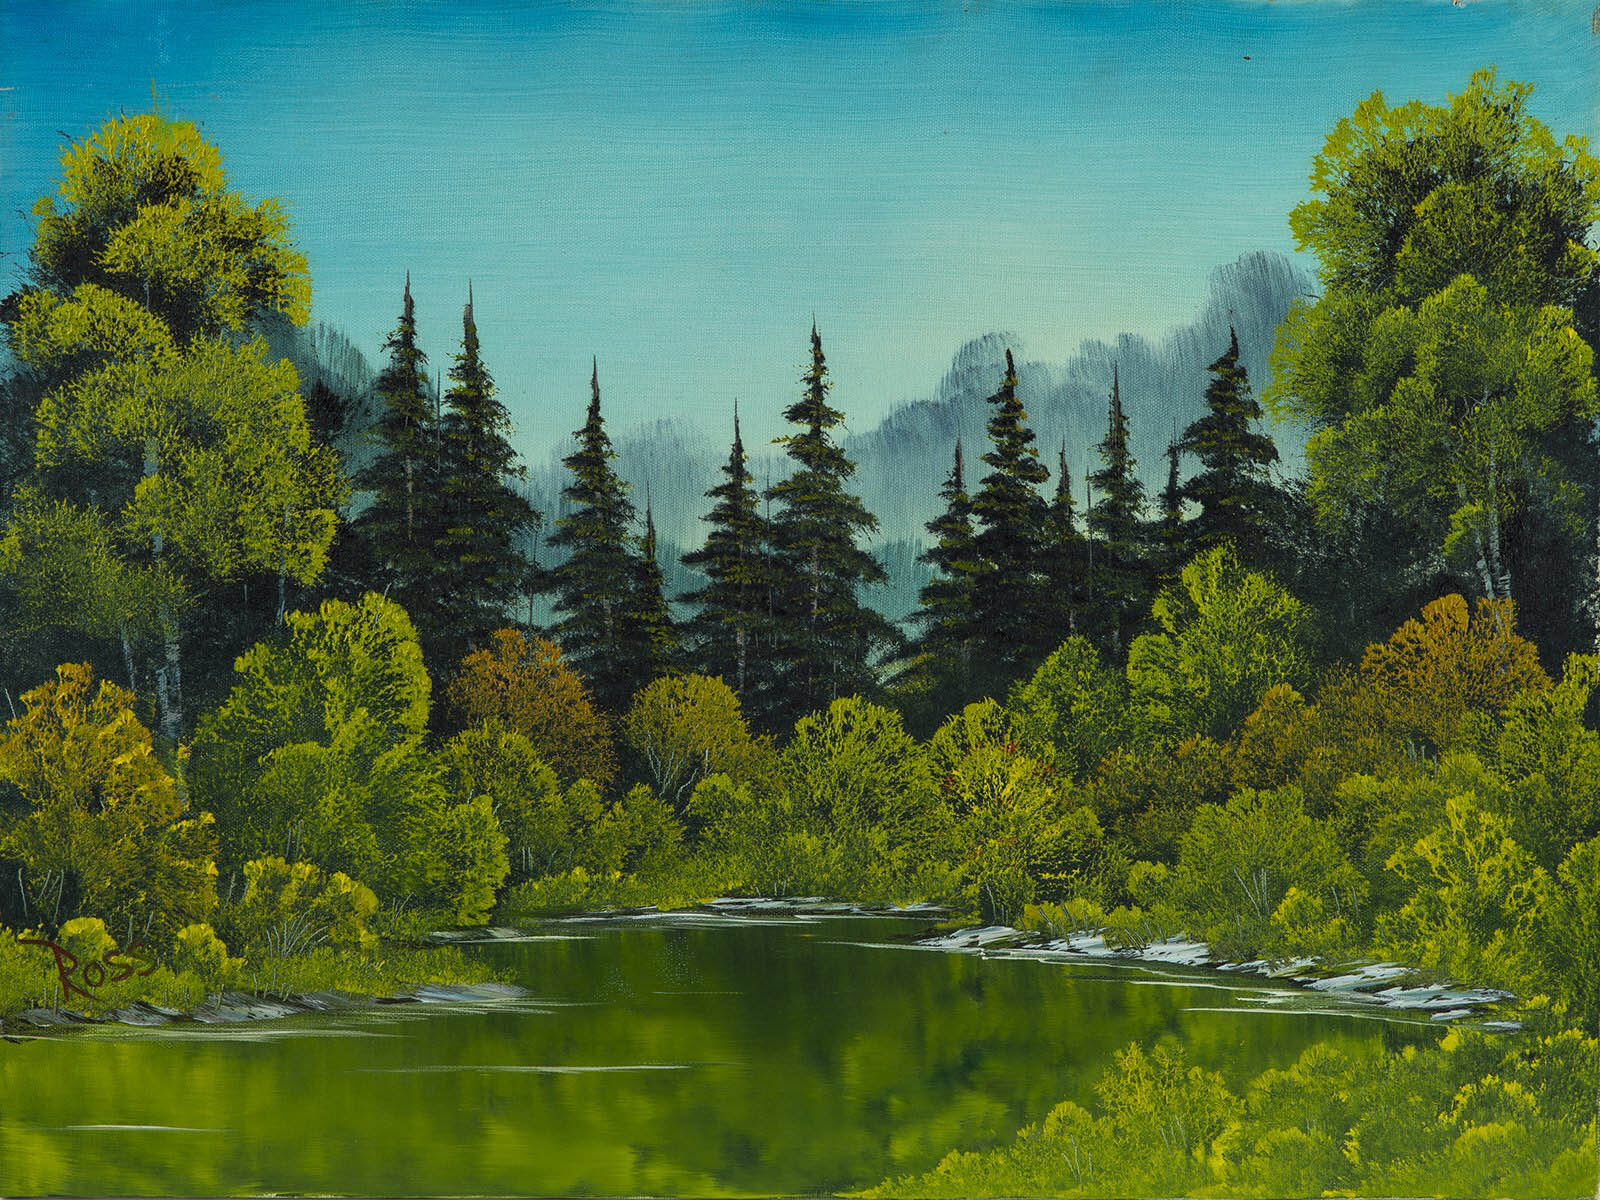 Bob Ross, Meadow Lake, Original Oil Painting, 1982. Image Used with Permission © Modern Artifact.